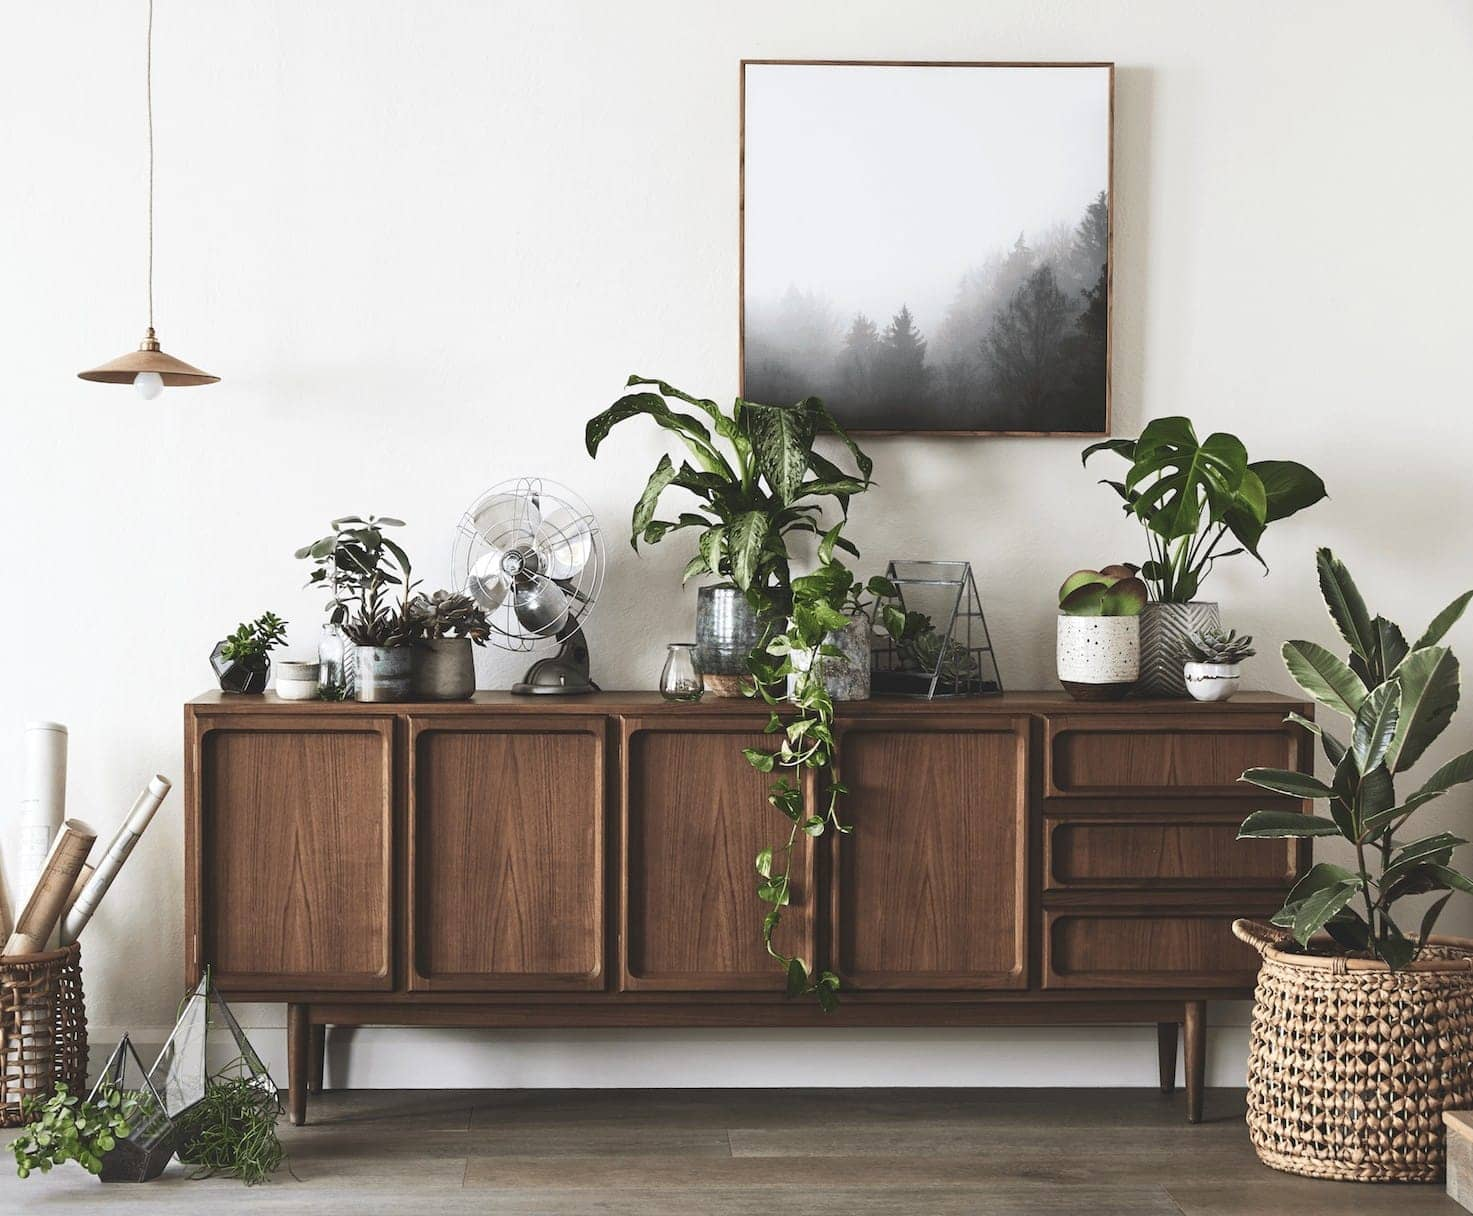 Easy Sideboard Styling Ideas To Try At Home Tlc Interiors